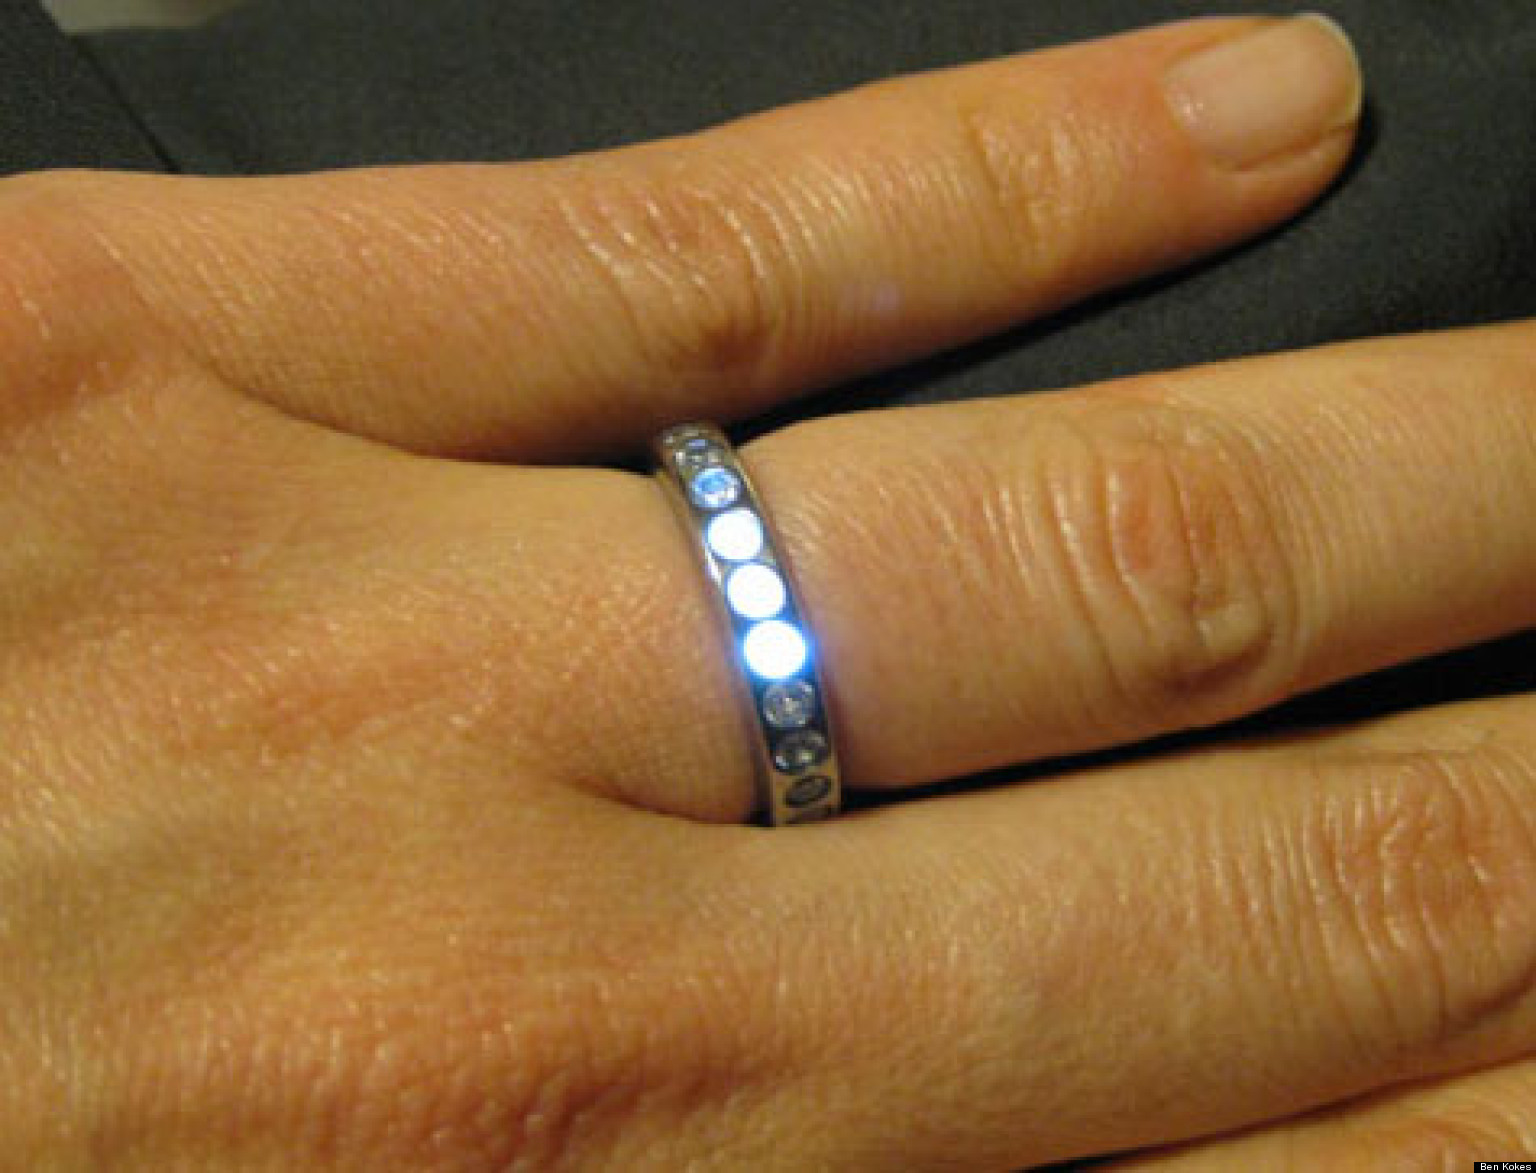 LED Wedding Ring Lights Up When Groom-To-Be Is Near (PHOTOS